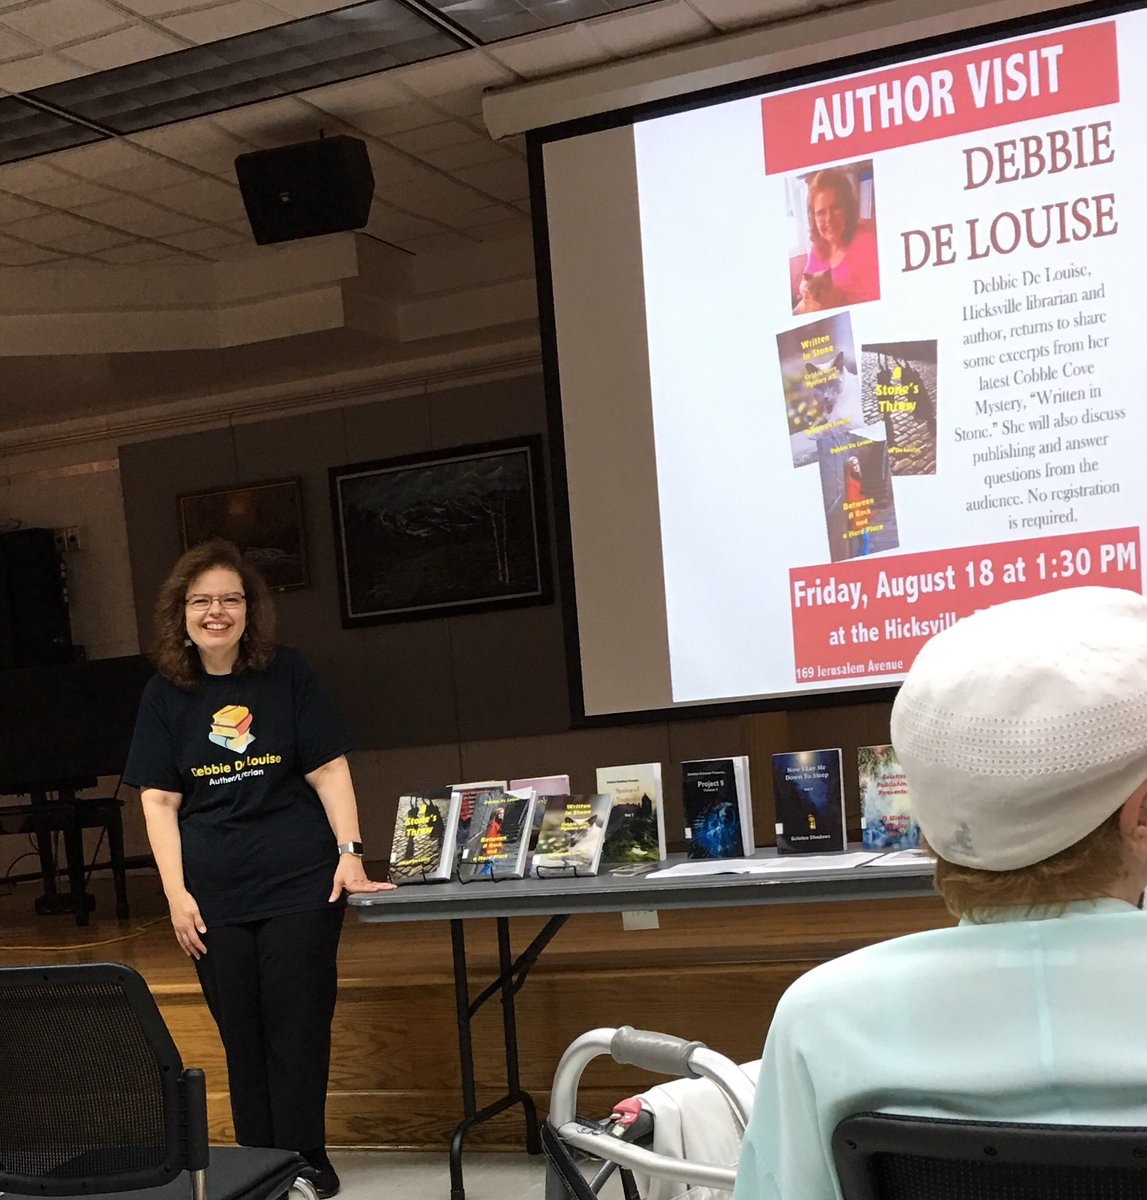 Attending Debbie De Louise&#39;s   @Deblibrarian author talk today at the Hicksville library #LongIsland #newyork <br>http://pic.twitter.com/iAUouhq8NF